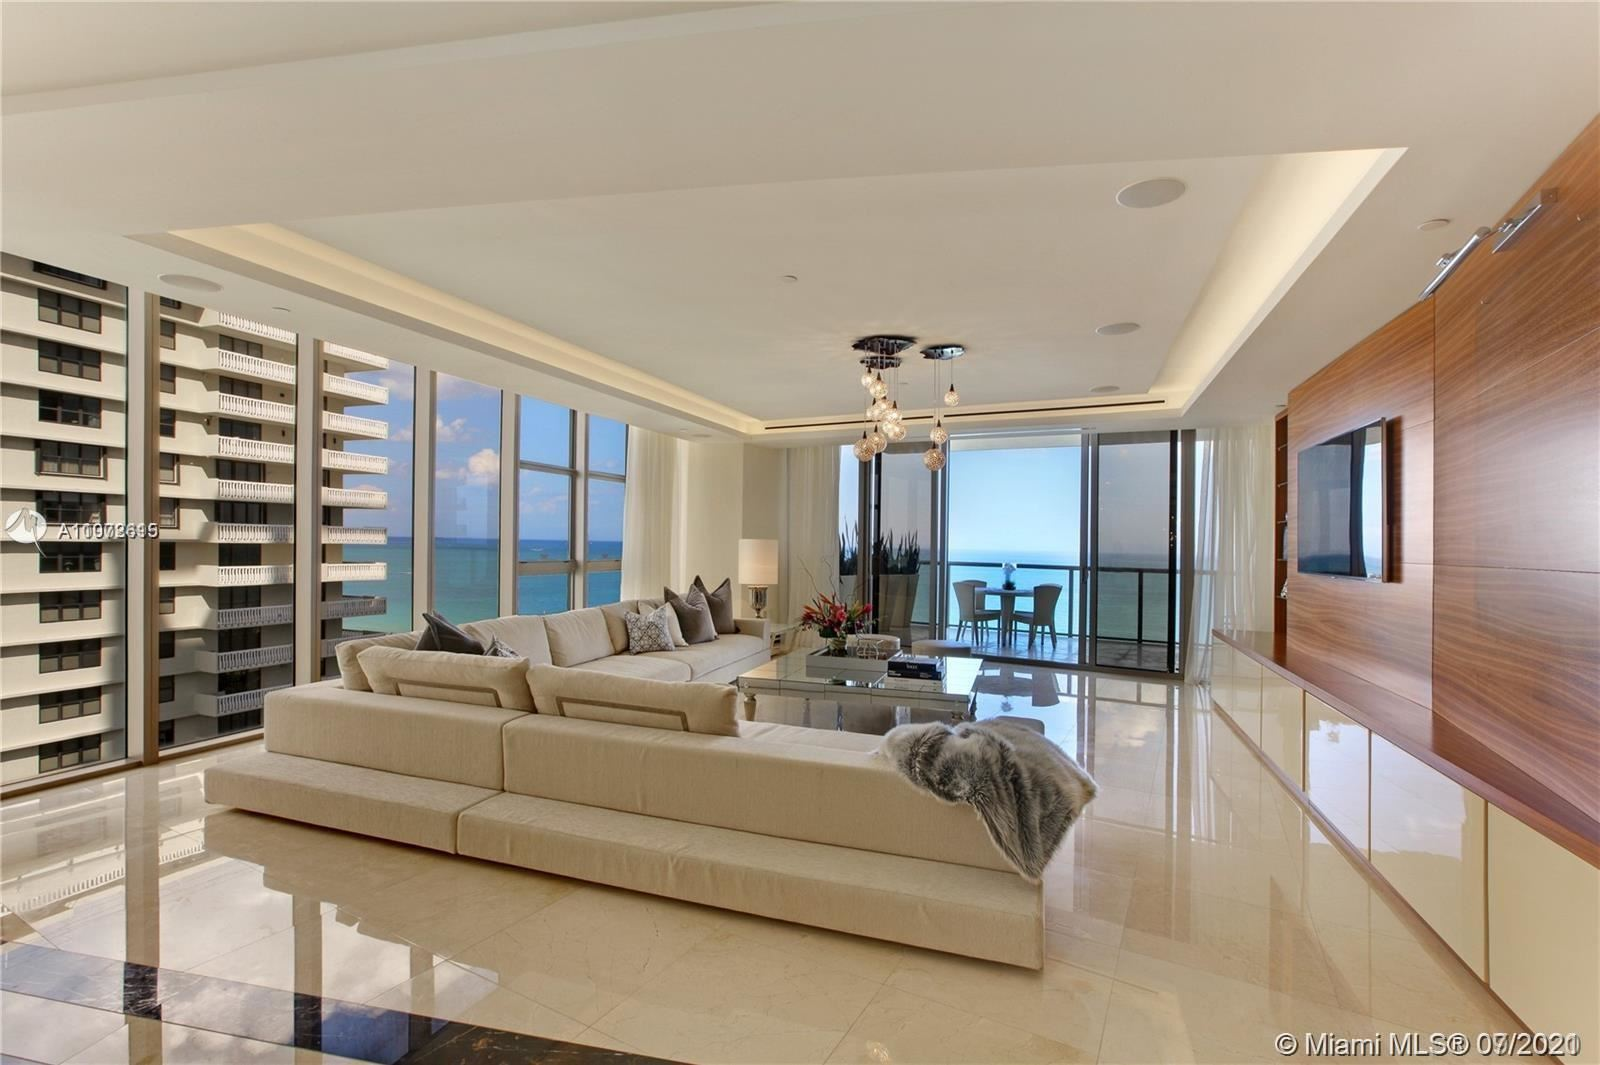 9705 Collins Ave #1001N, Bal Harbour, FL 33154 - #: A11072615